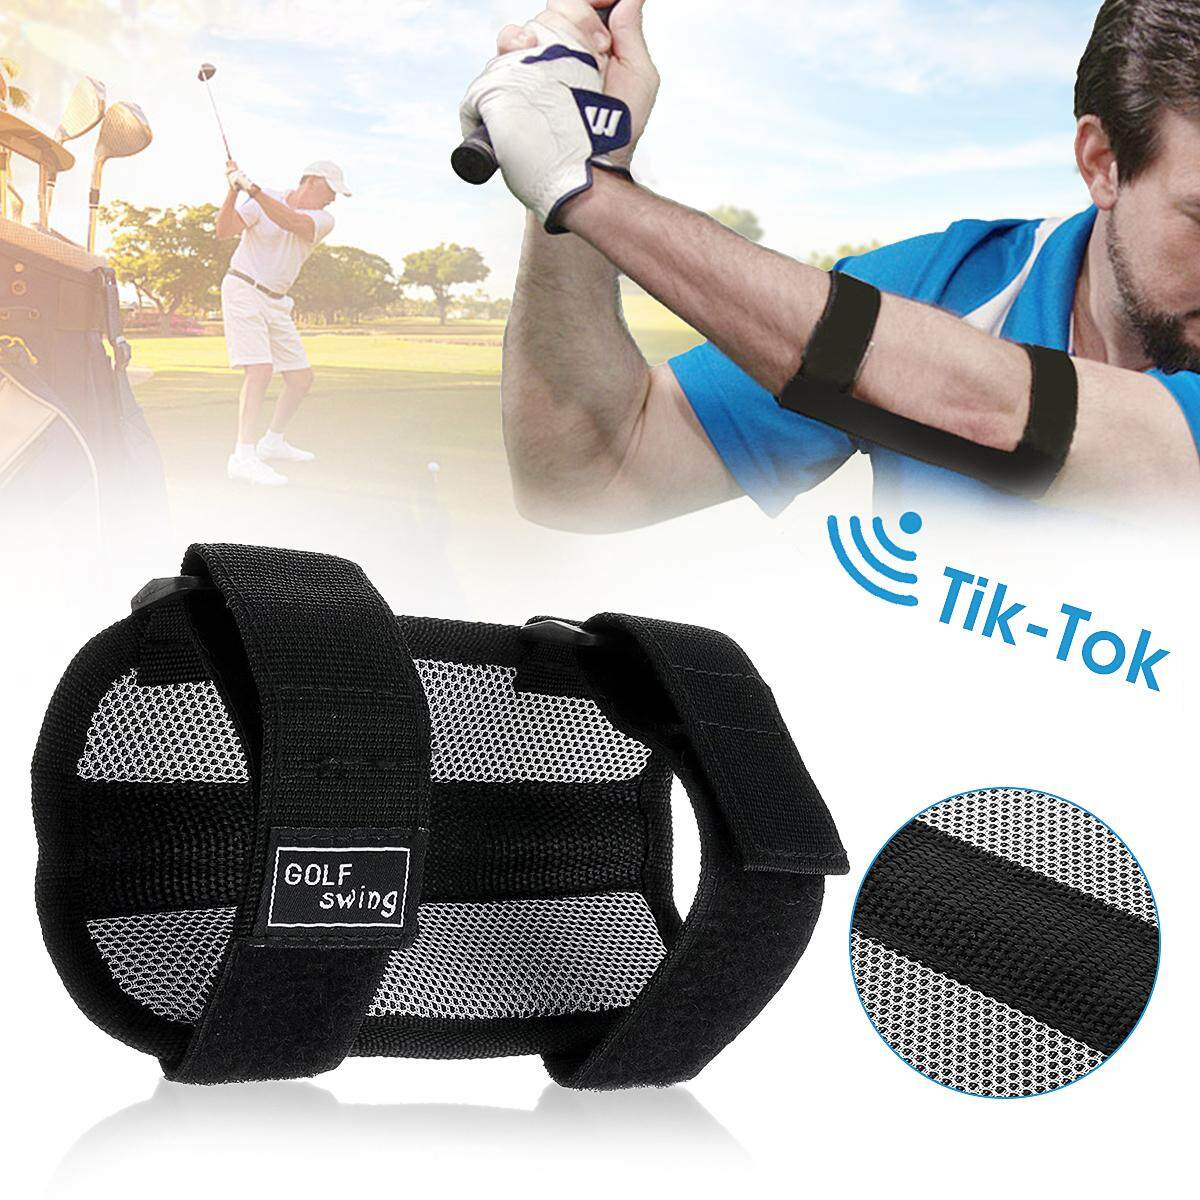 Golf Swing Gesture Practice Training Aids Elbow Support Brace Arm Band Trainer By Audew.